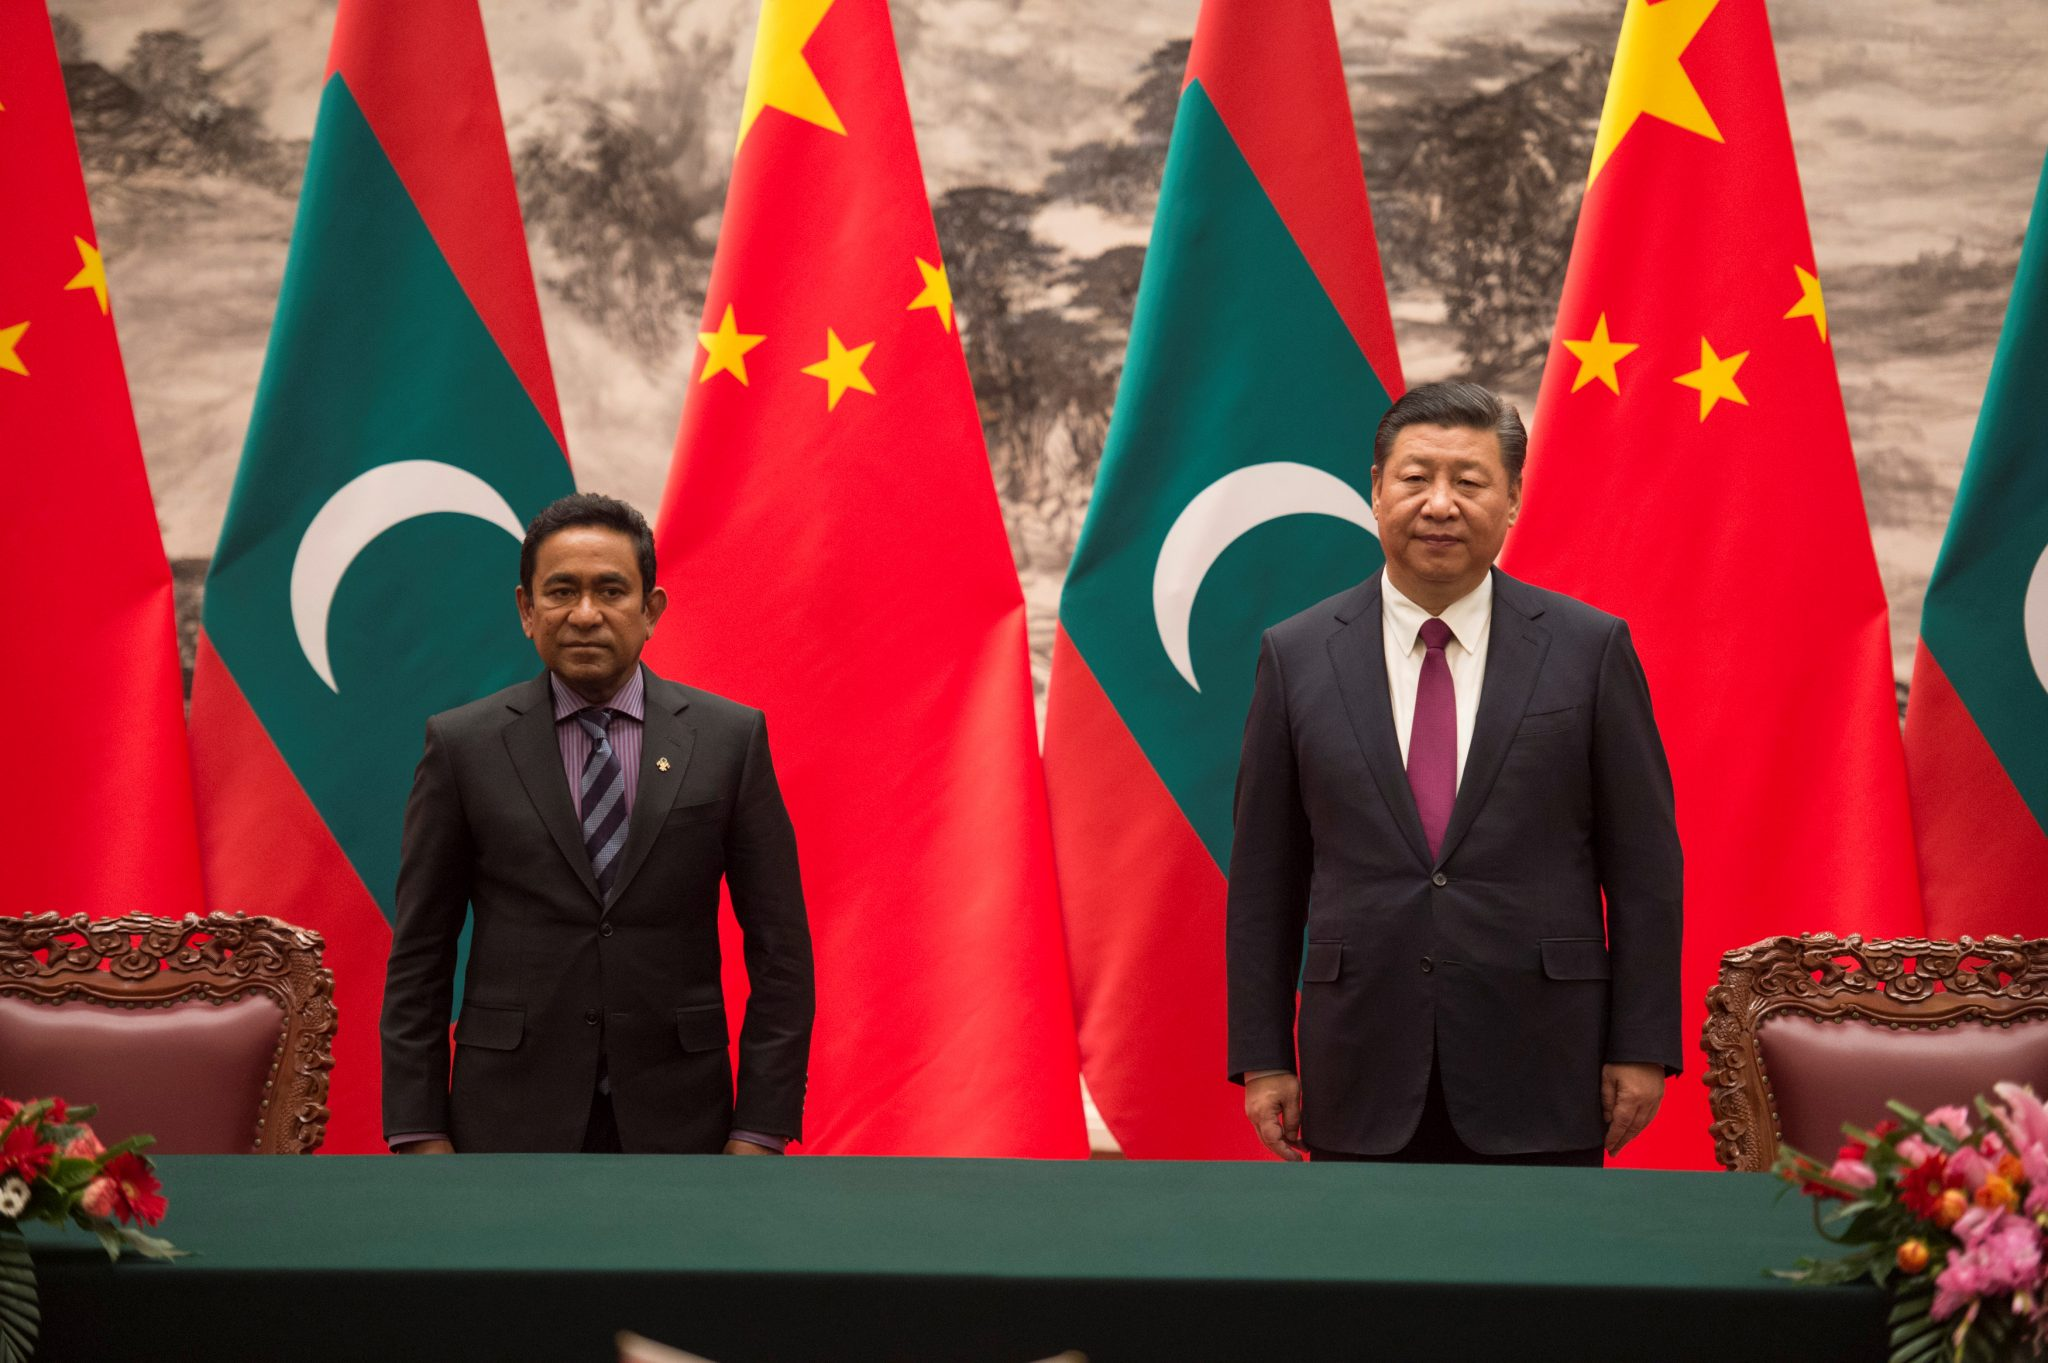 West becomes increasingly concerned with Yameen's close relationship with China: Maldives President Abdulla Yameen and China's President Xi Jinping attend a signing meeting at the Great Hall of the People in Beijing | REUTERS